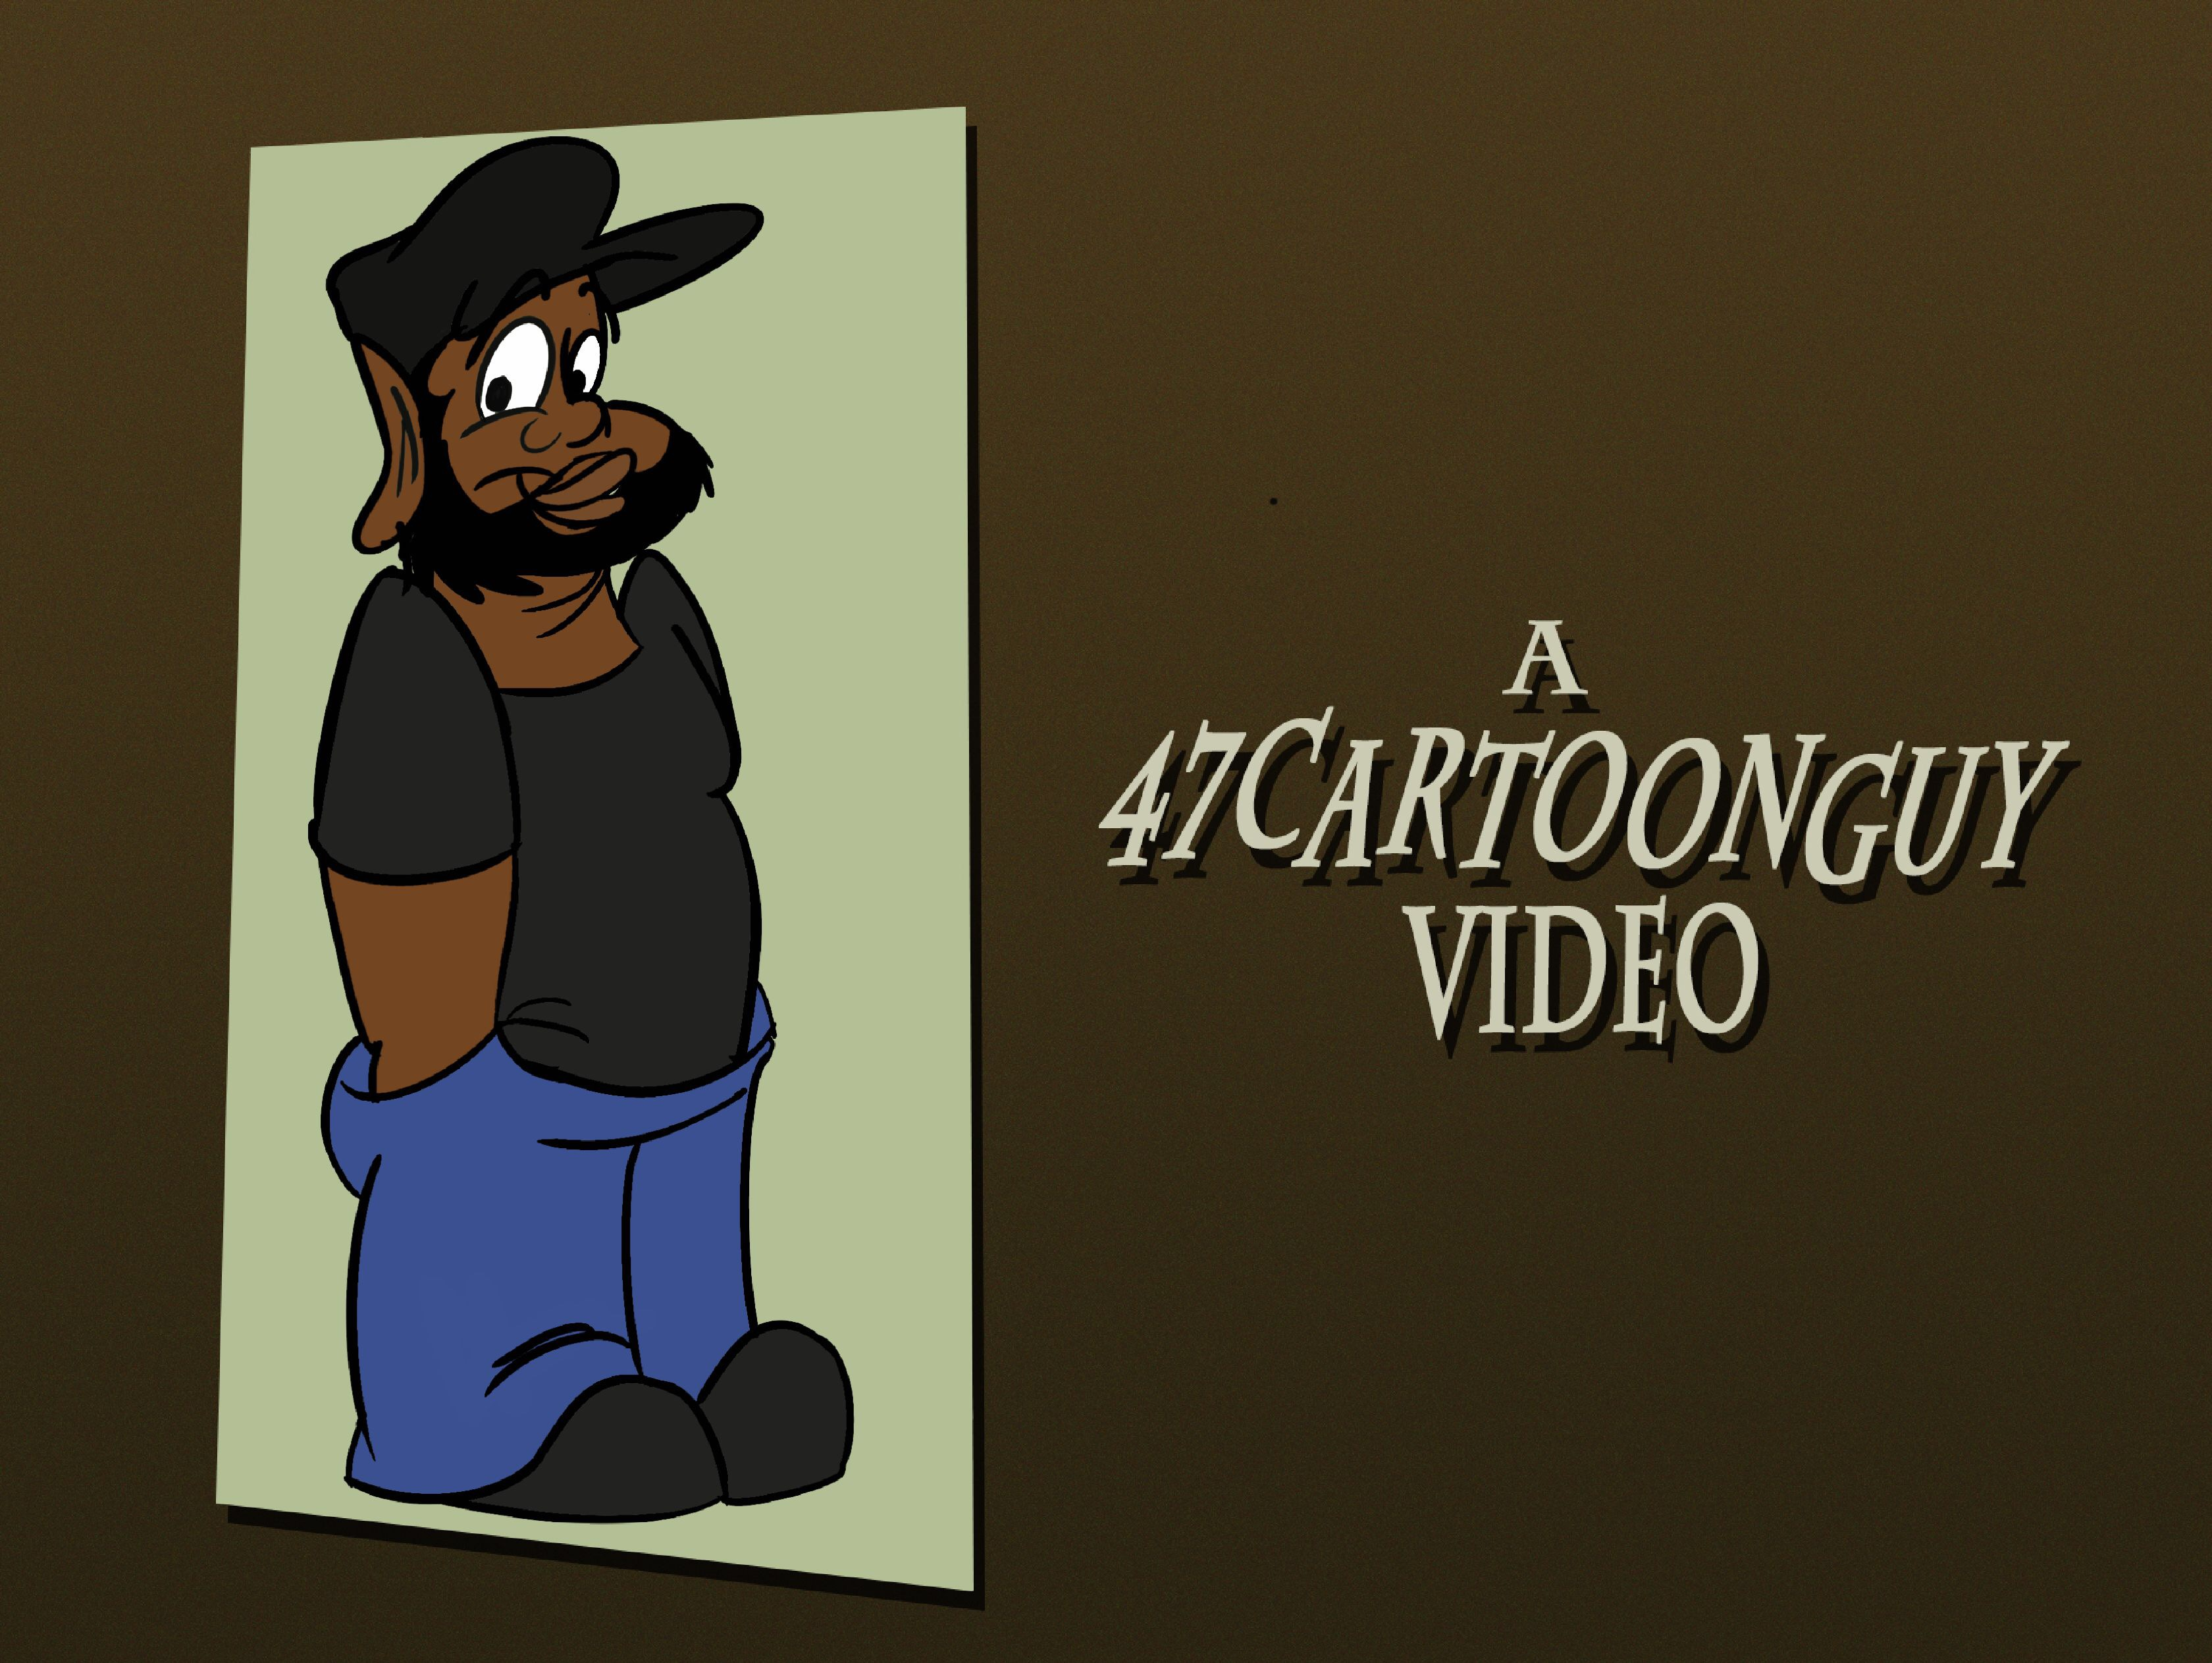 47CartoonGuy Video